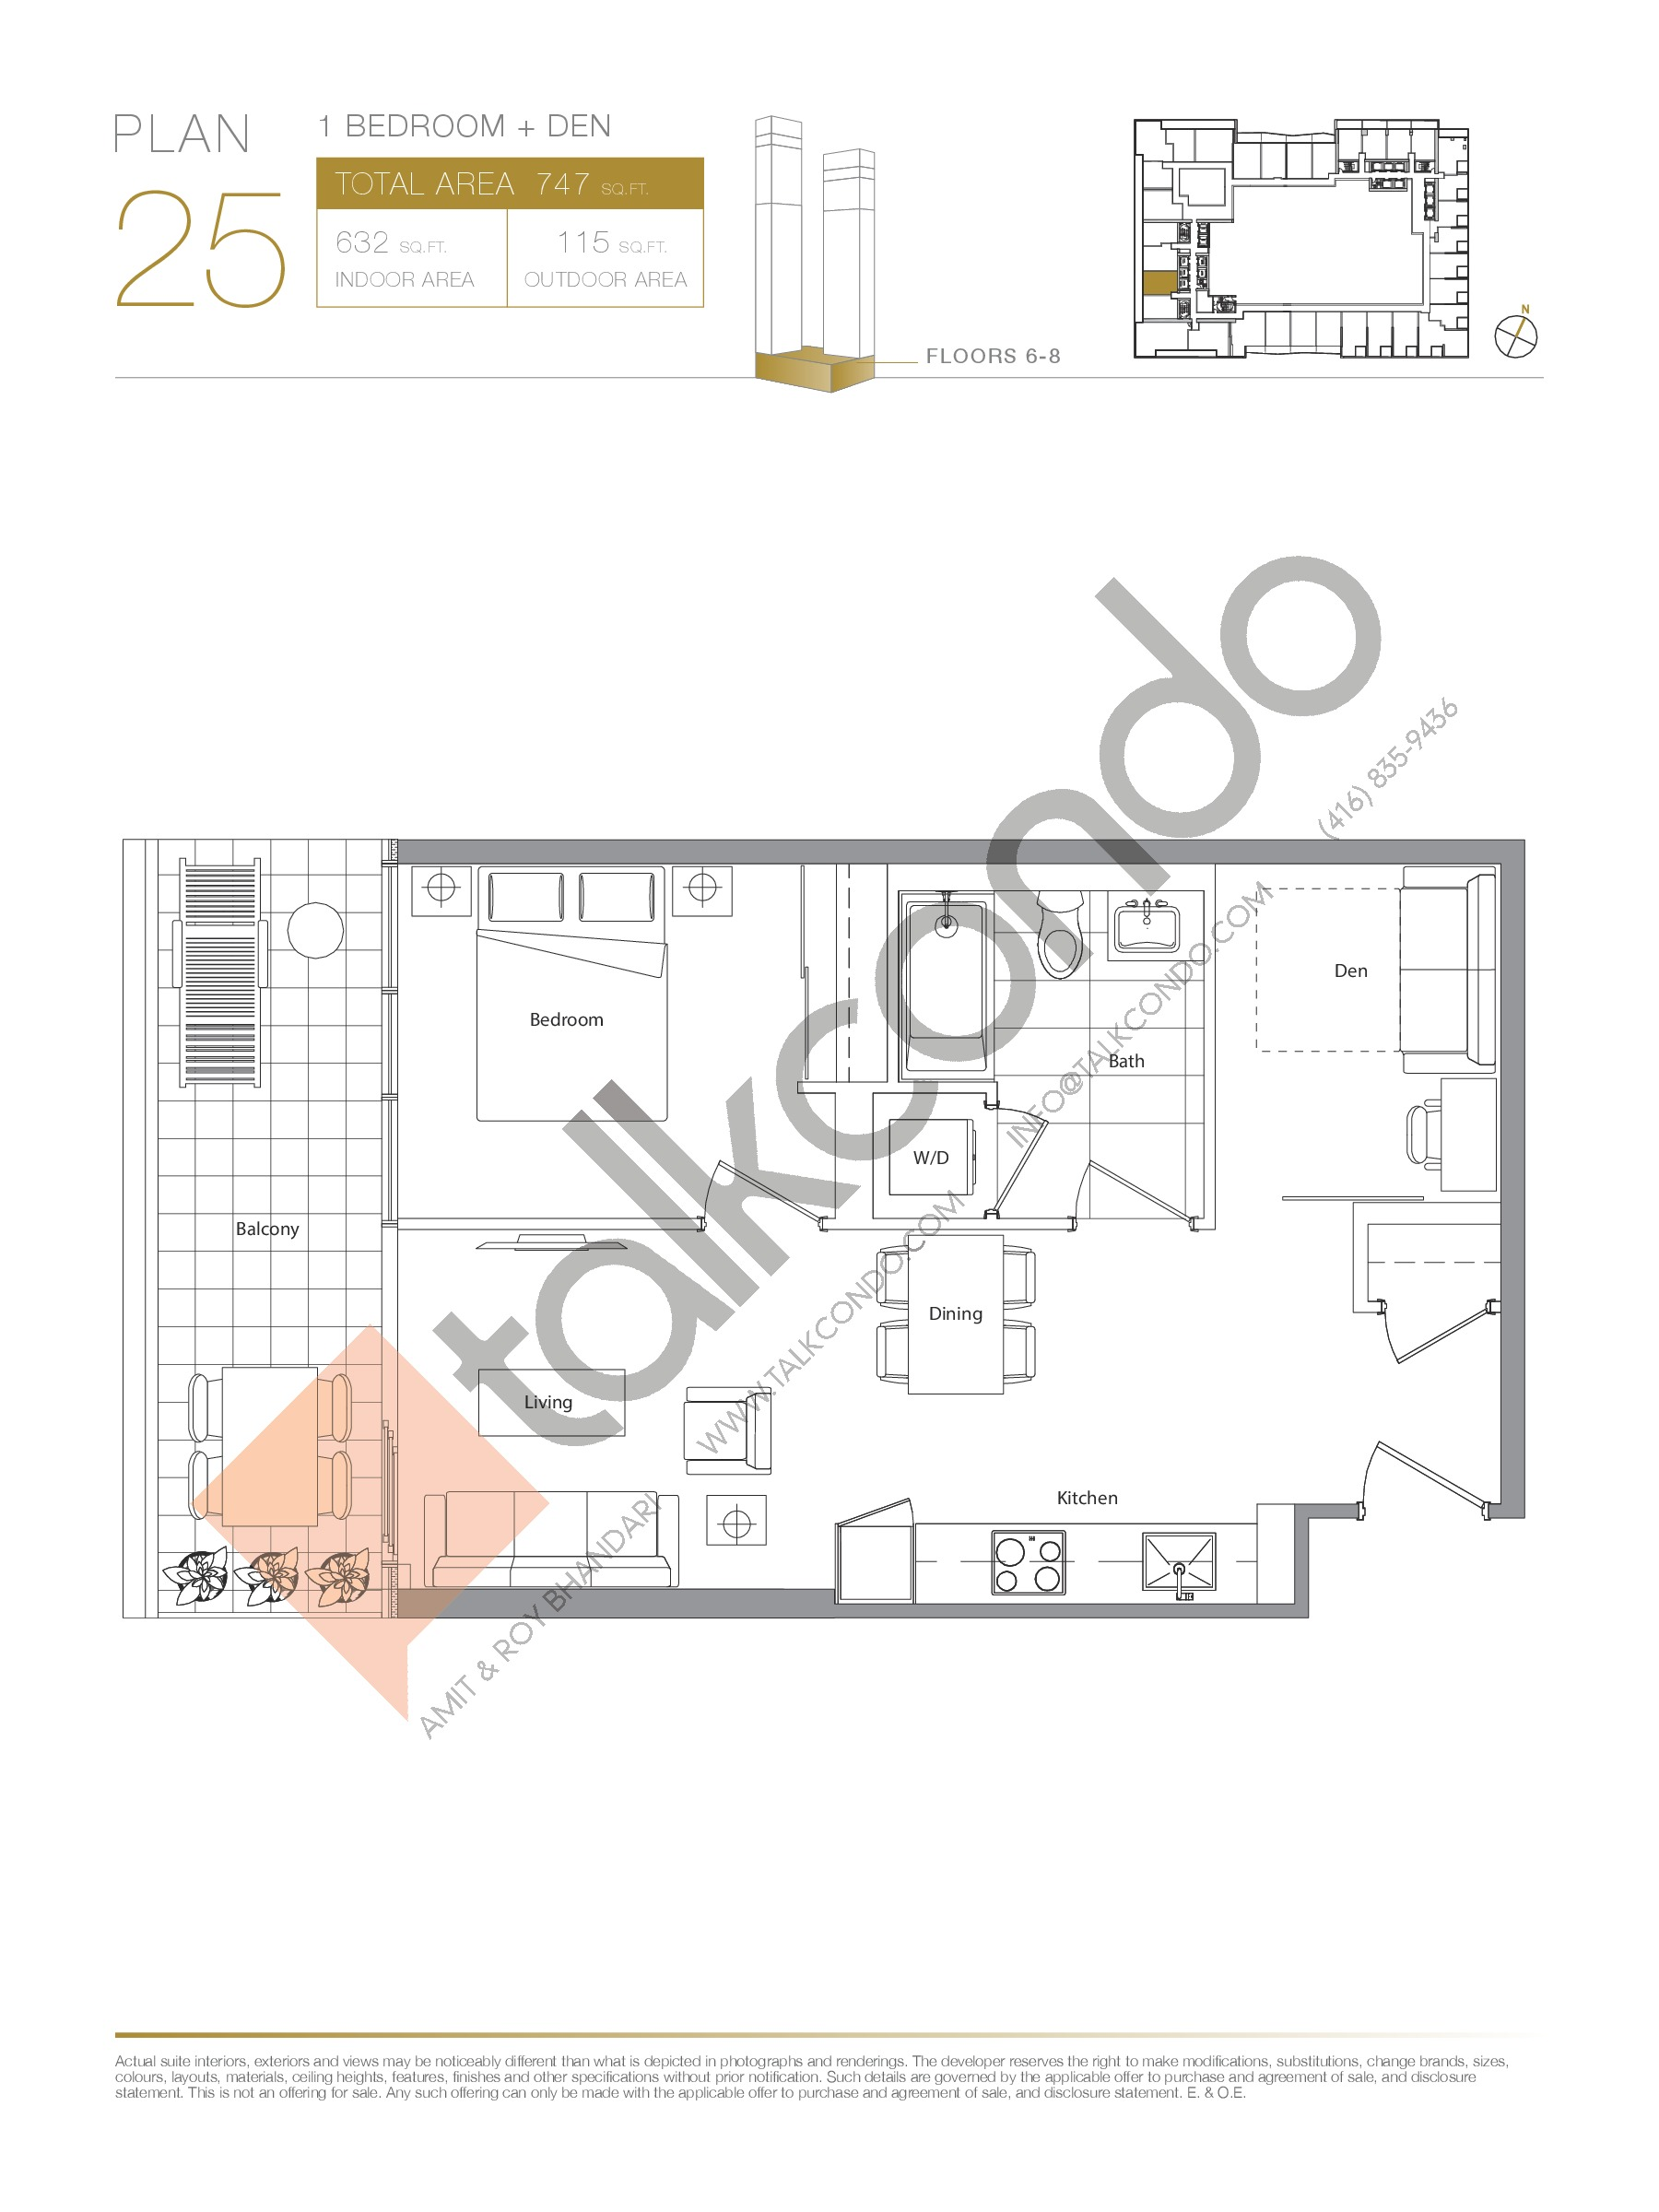 Plan 25 Floor Plan at Concord Canada House Condos - 632 sq.ft